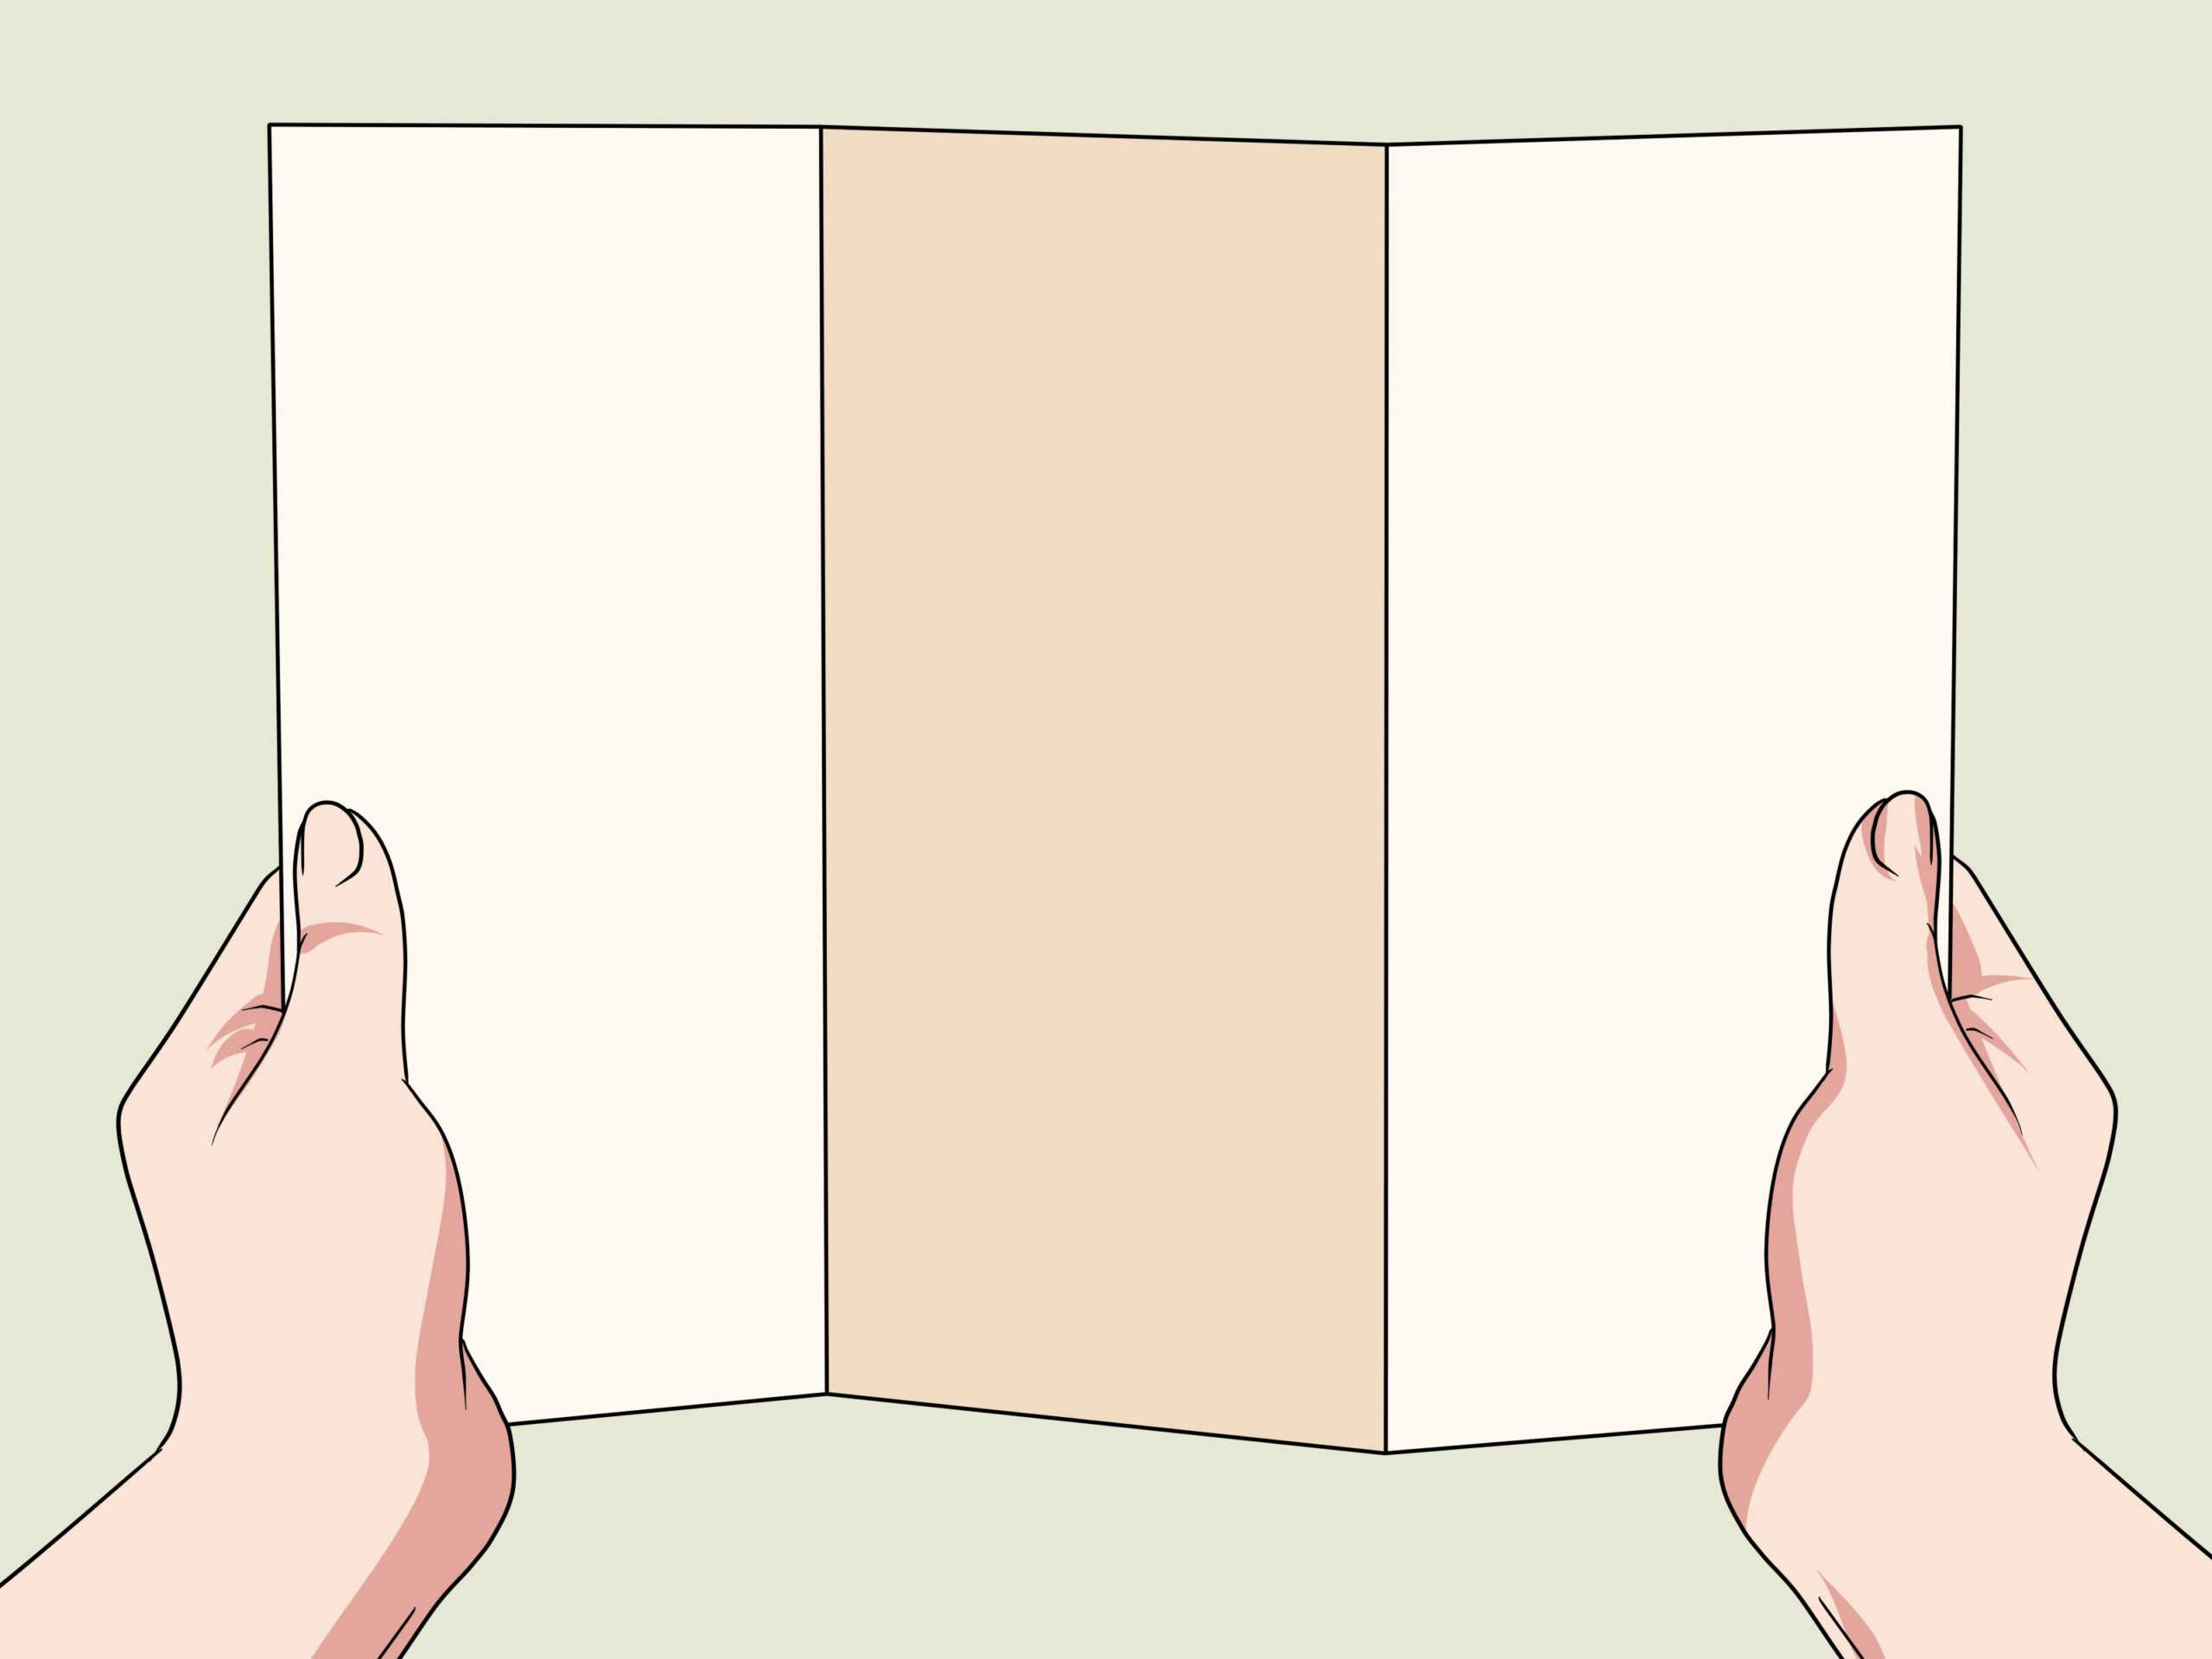 3 Ways To Make A Brochure For A School Project - Wikihow Intended For Brochure Templates For School Project